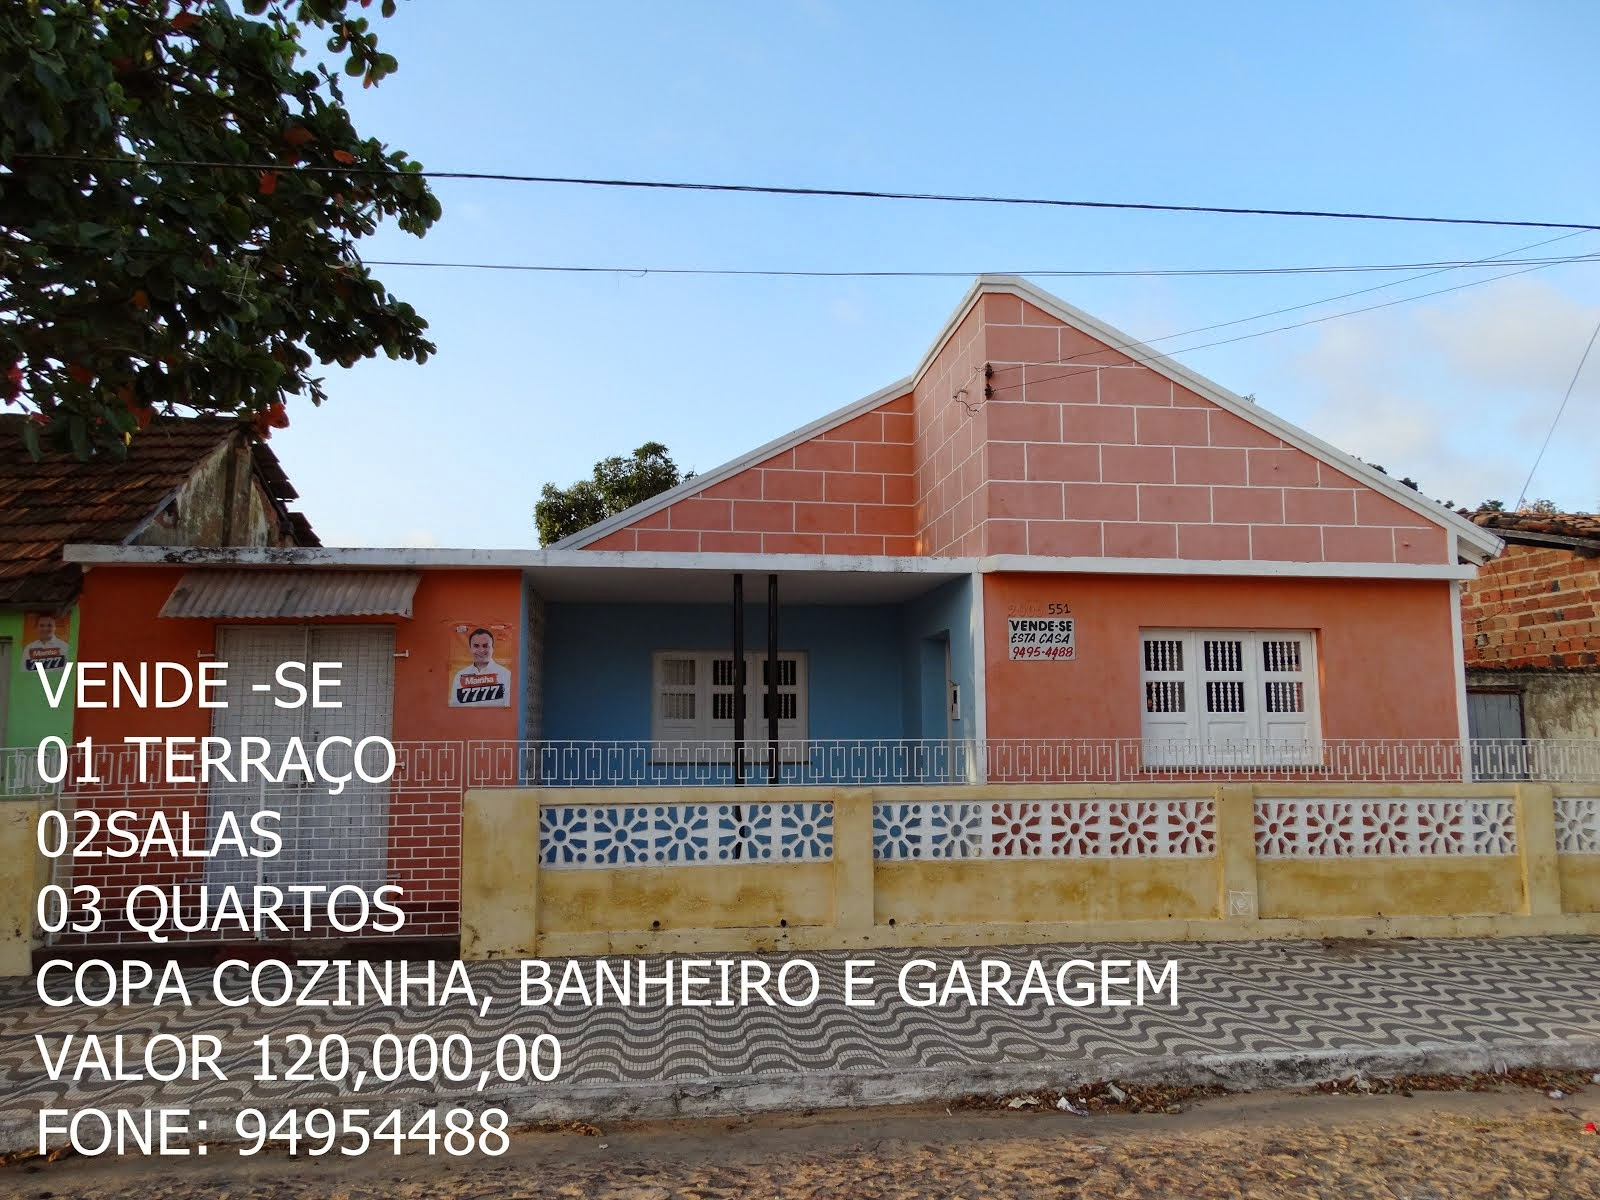 CLASSIFICADO VENDE -SE ESTA CASA